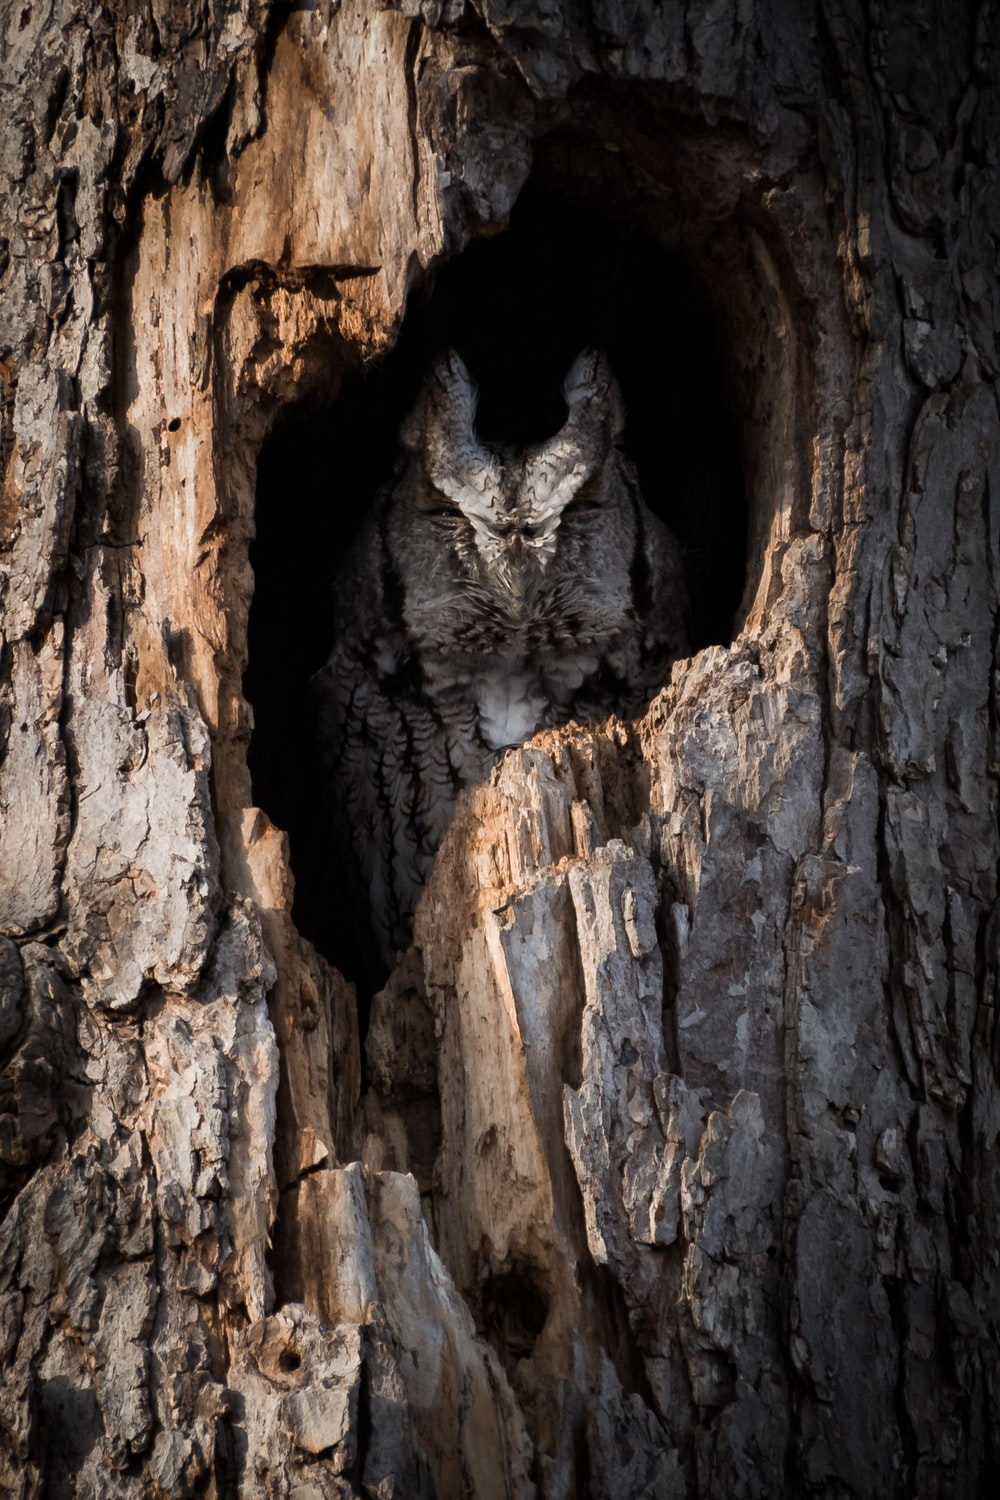 owl inside tree hole